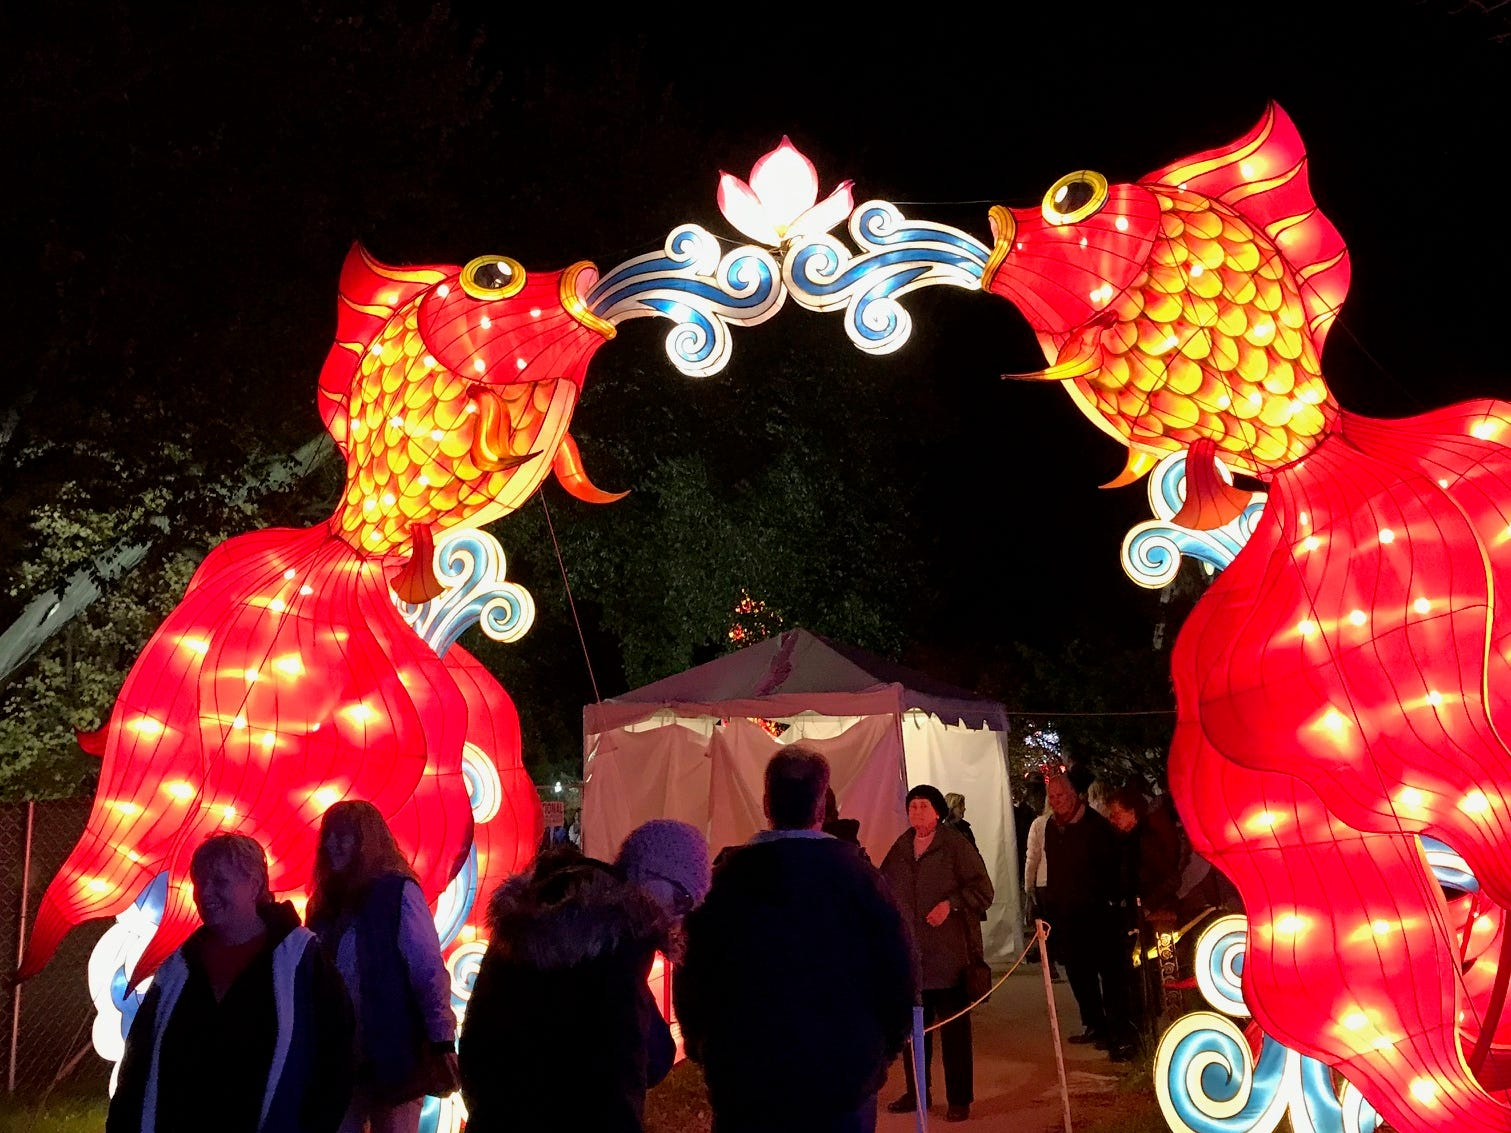 The fish provide a nice gateway for guests at the 2018 China Lights lantern festival. An interactive display for children awaits in this area of the Boerner Botanical Gardens.